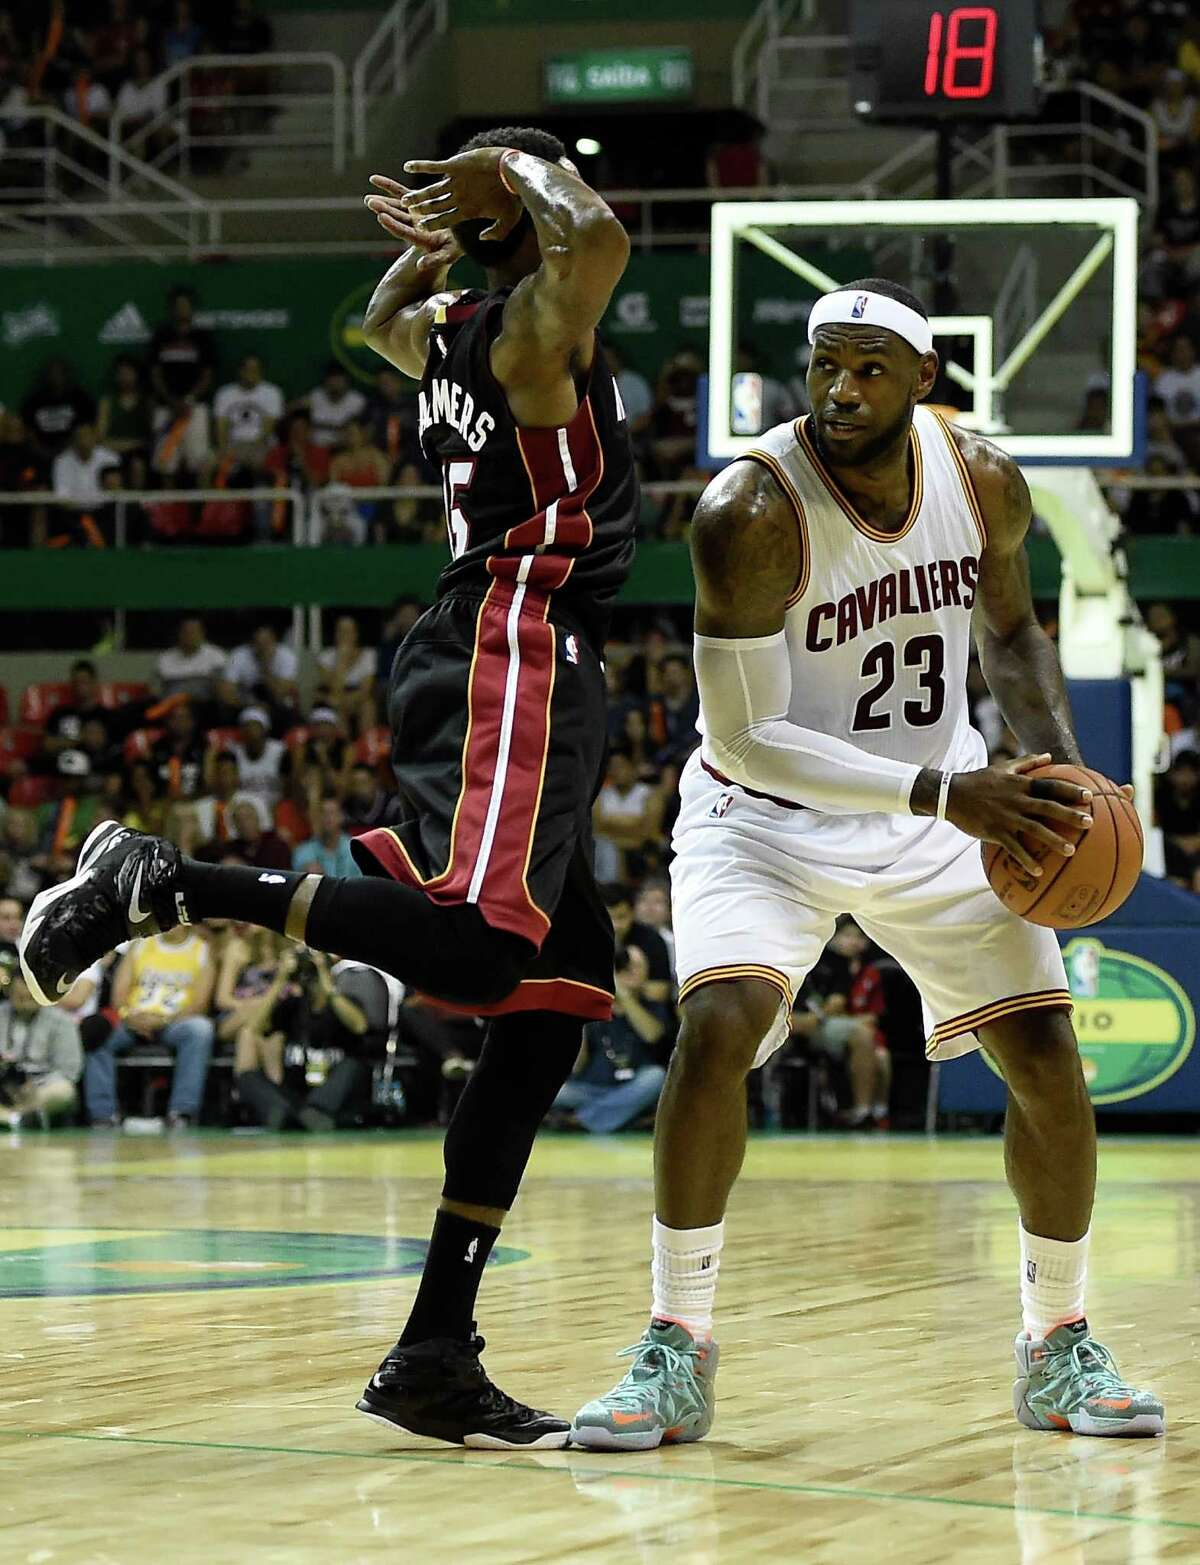 RIO DE JANEIRO, BRAZIL - OCTOBER 11: LeBron James #23 of the Cleveland Cavaliers drives against Mario Chalmers #15 of the Miami Heat at Arena HSBC on October 11, 2014 in Rio de Janeiro, Brazil. NOTE TO USER: User expressly acknowledges and agrees that, by downloading and/or using this photograph, user is consenting to the terms and conditions of the Getty Images License Agreement. (Photo by Buda Mendes/Getty Images) ORG XMIT: 509480769